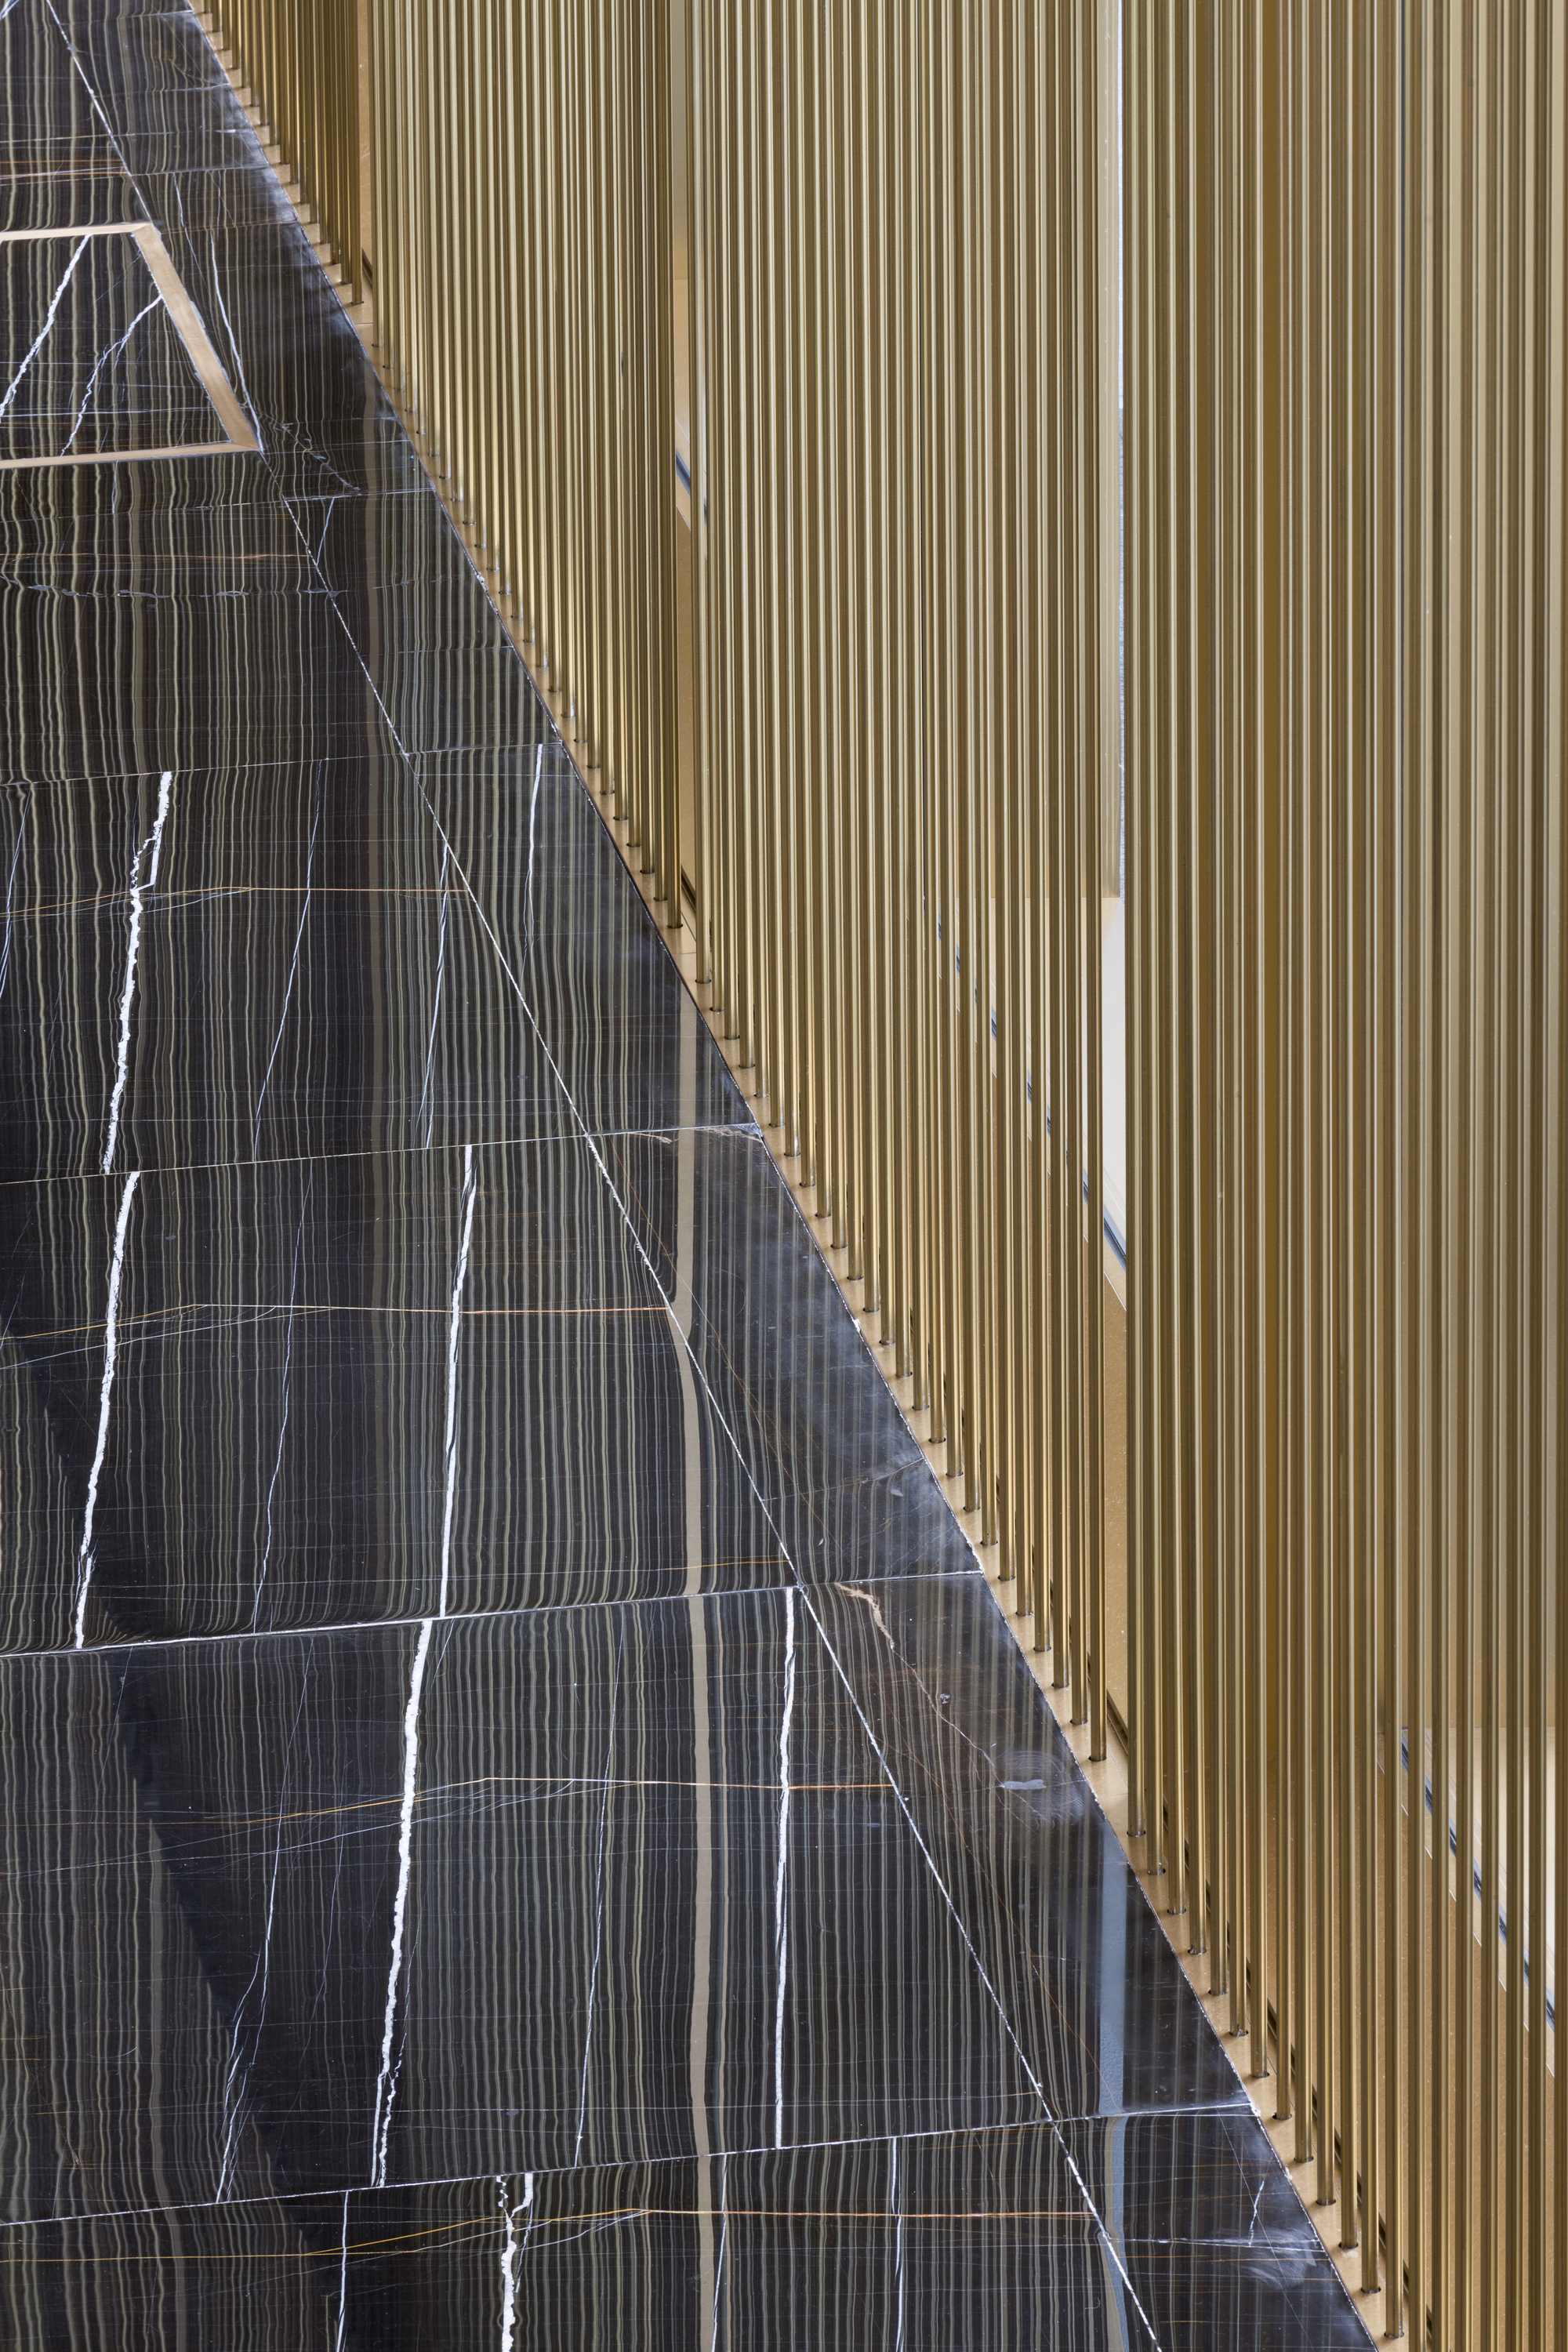 Gallery of The Murray Hotel / Foster + Partners - 17